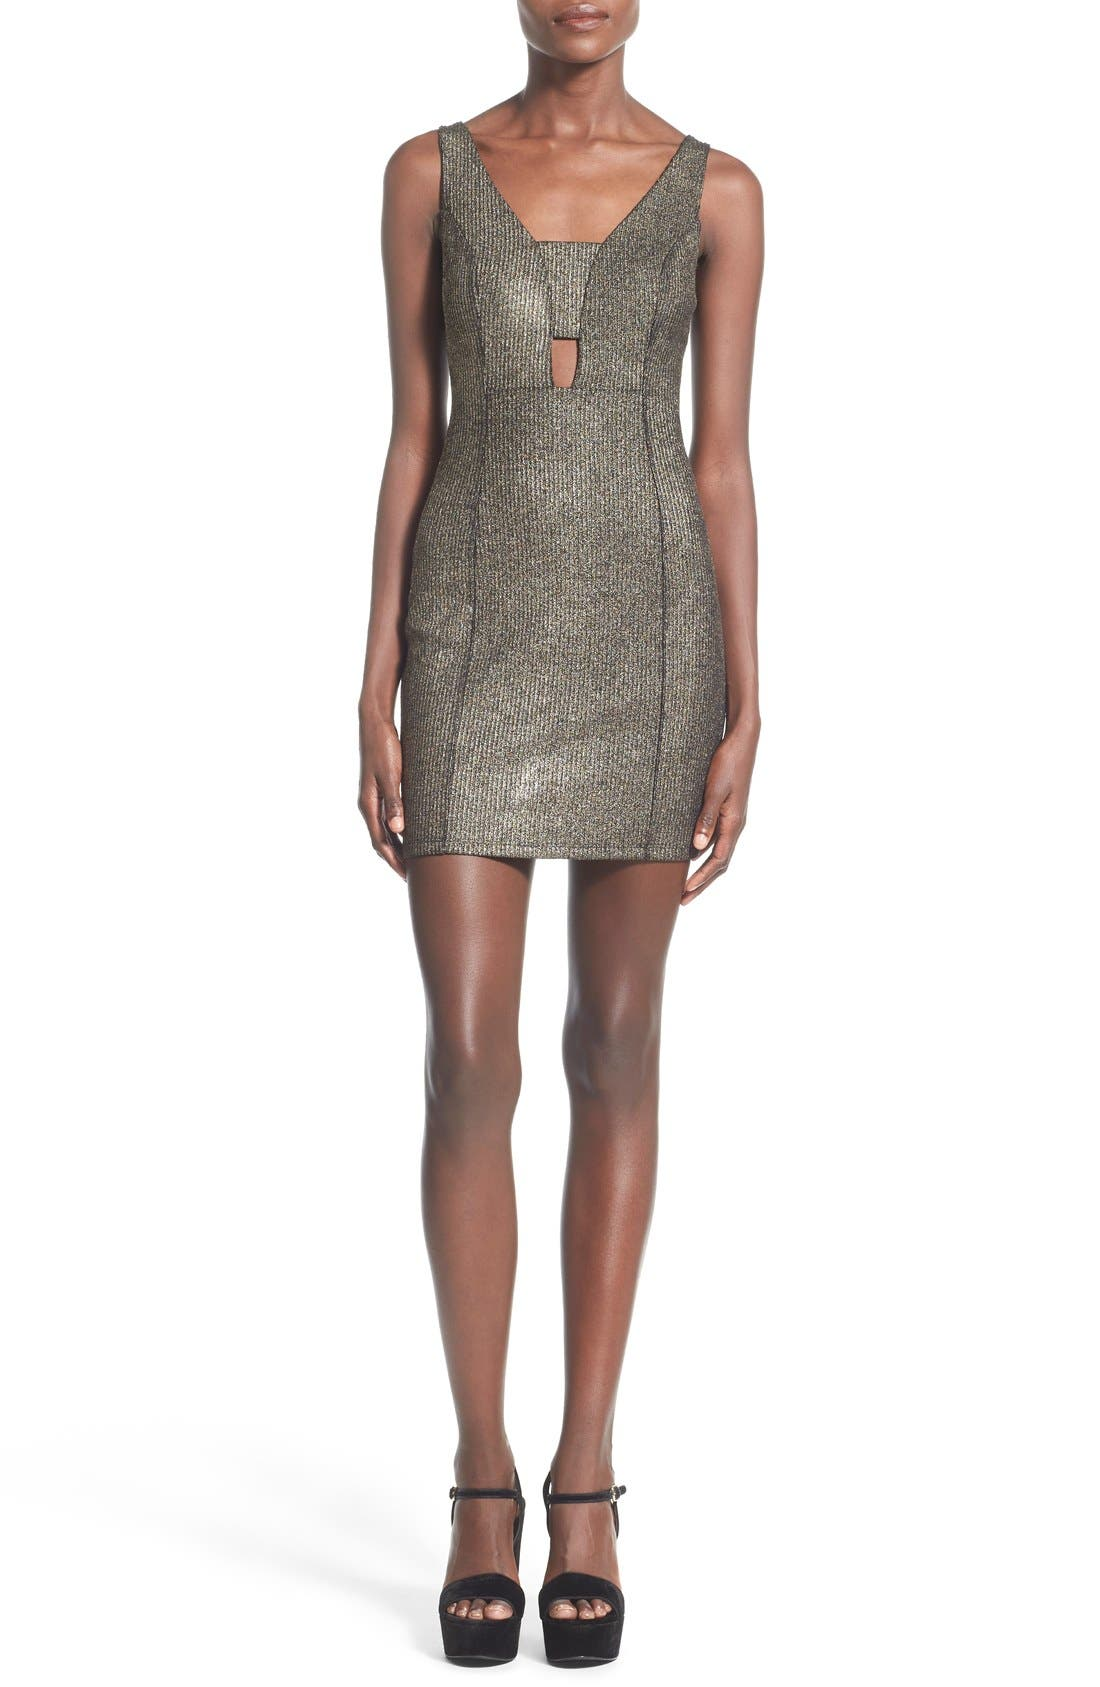 Alternate Image 1 Selected - Soprano Cutout Detail Metallic Body-Con Dress